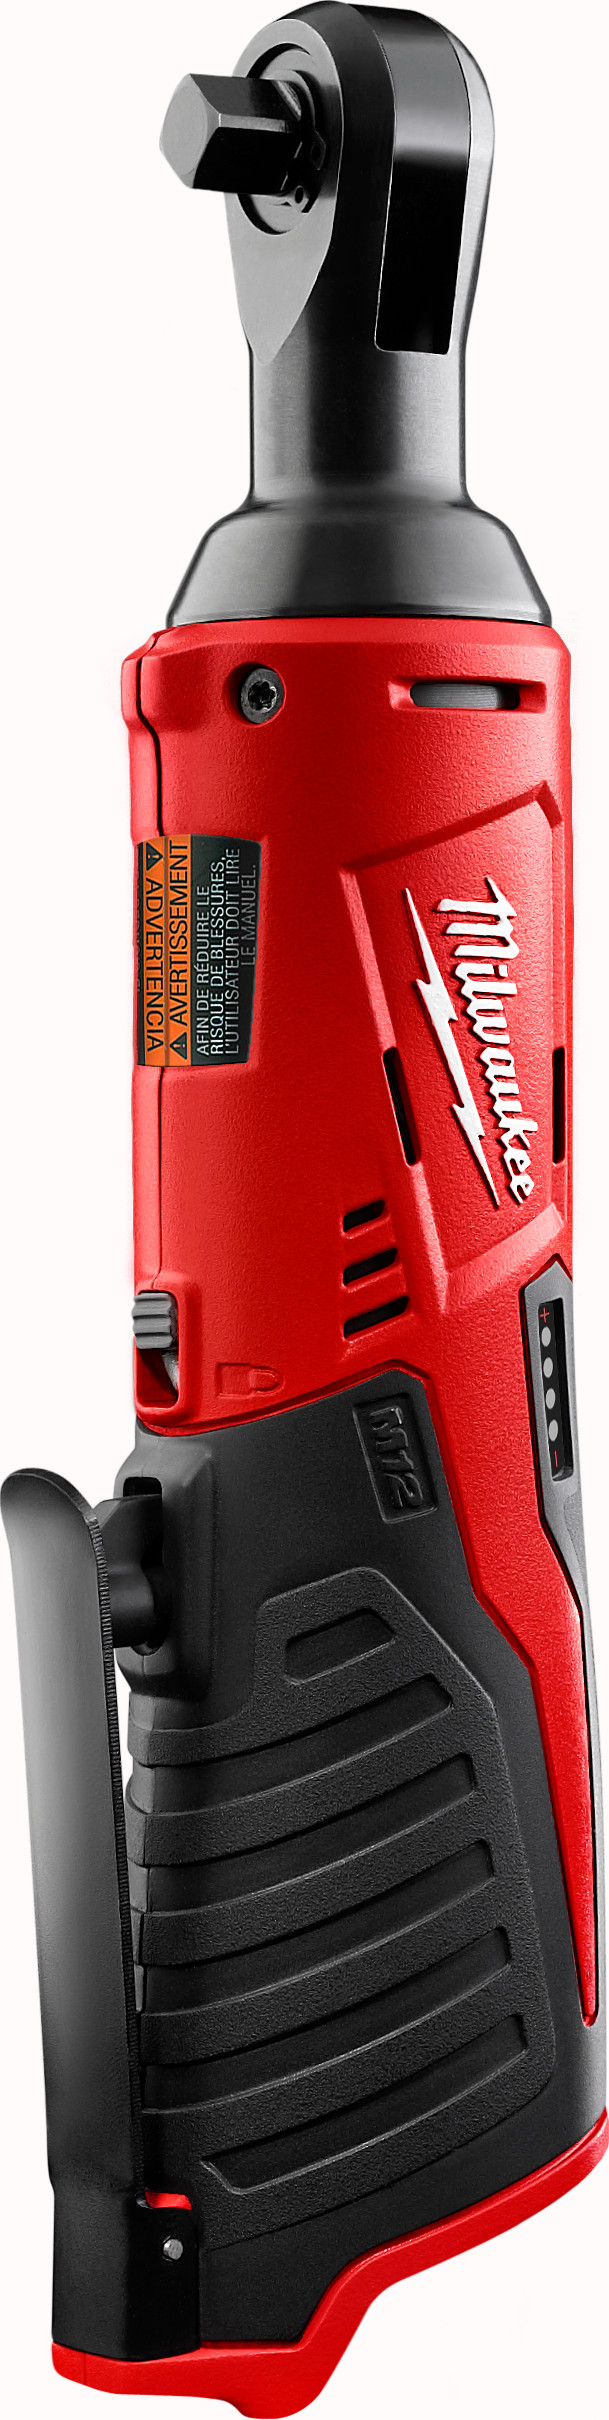 Milwaukee® M12™ 2457-20 Double Insulated Cordless Ratchet, 3/8 in Drive, 35 ft-lb Torque, 250 rpm Speed, 12 VDC, Lithium-Ion Battery, 10-3/4 in OAL